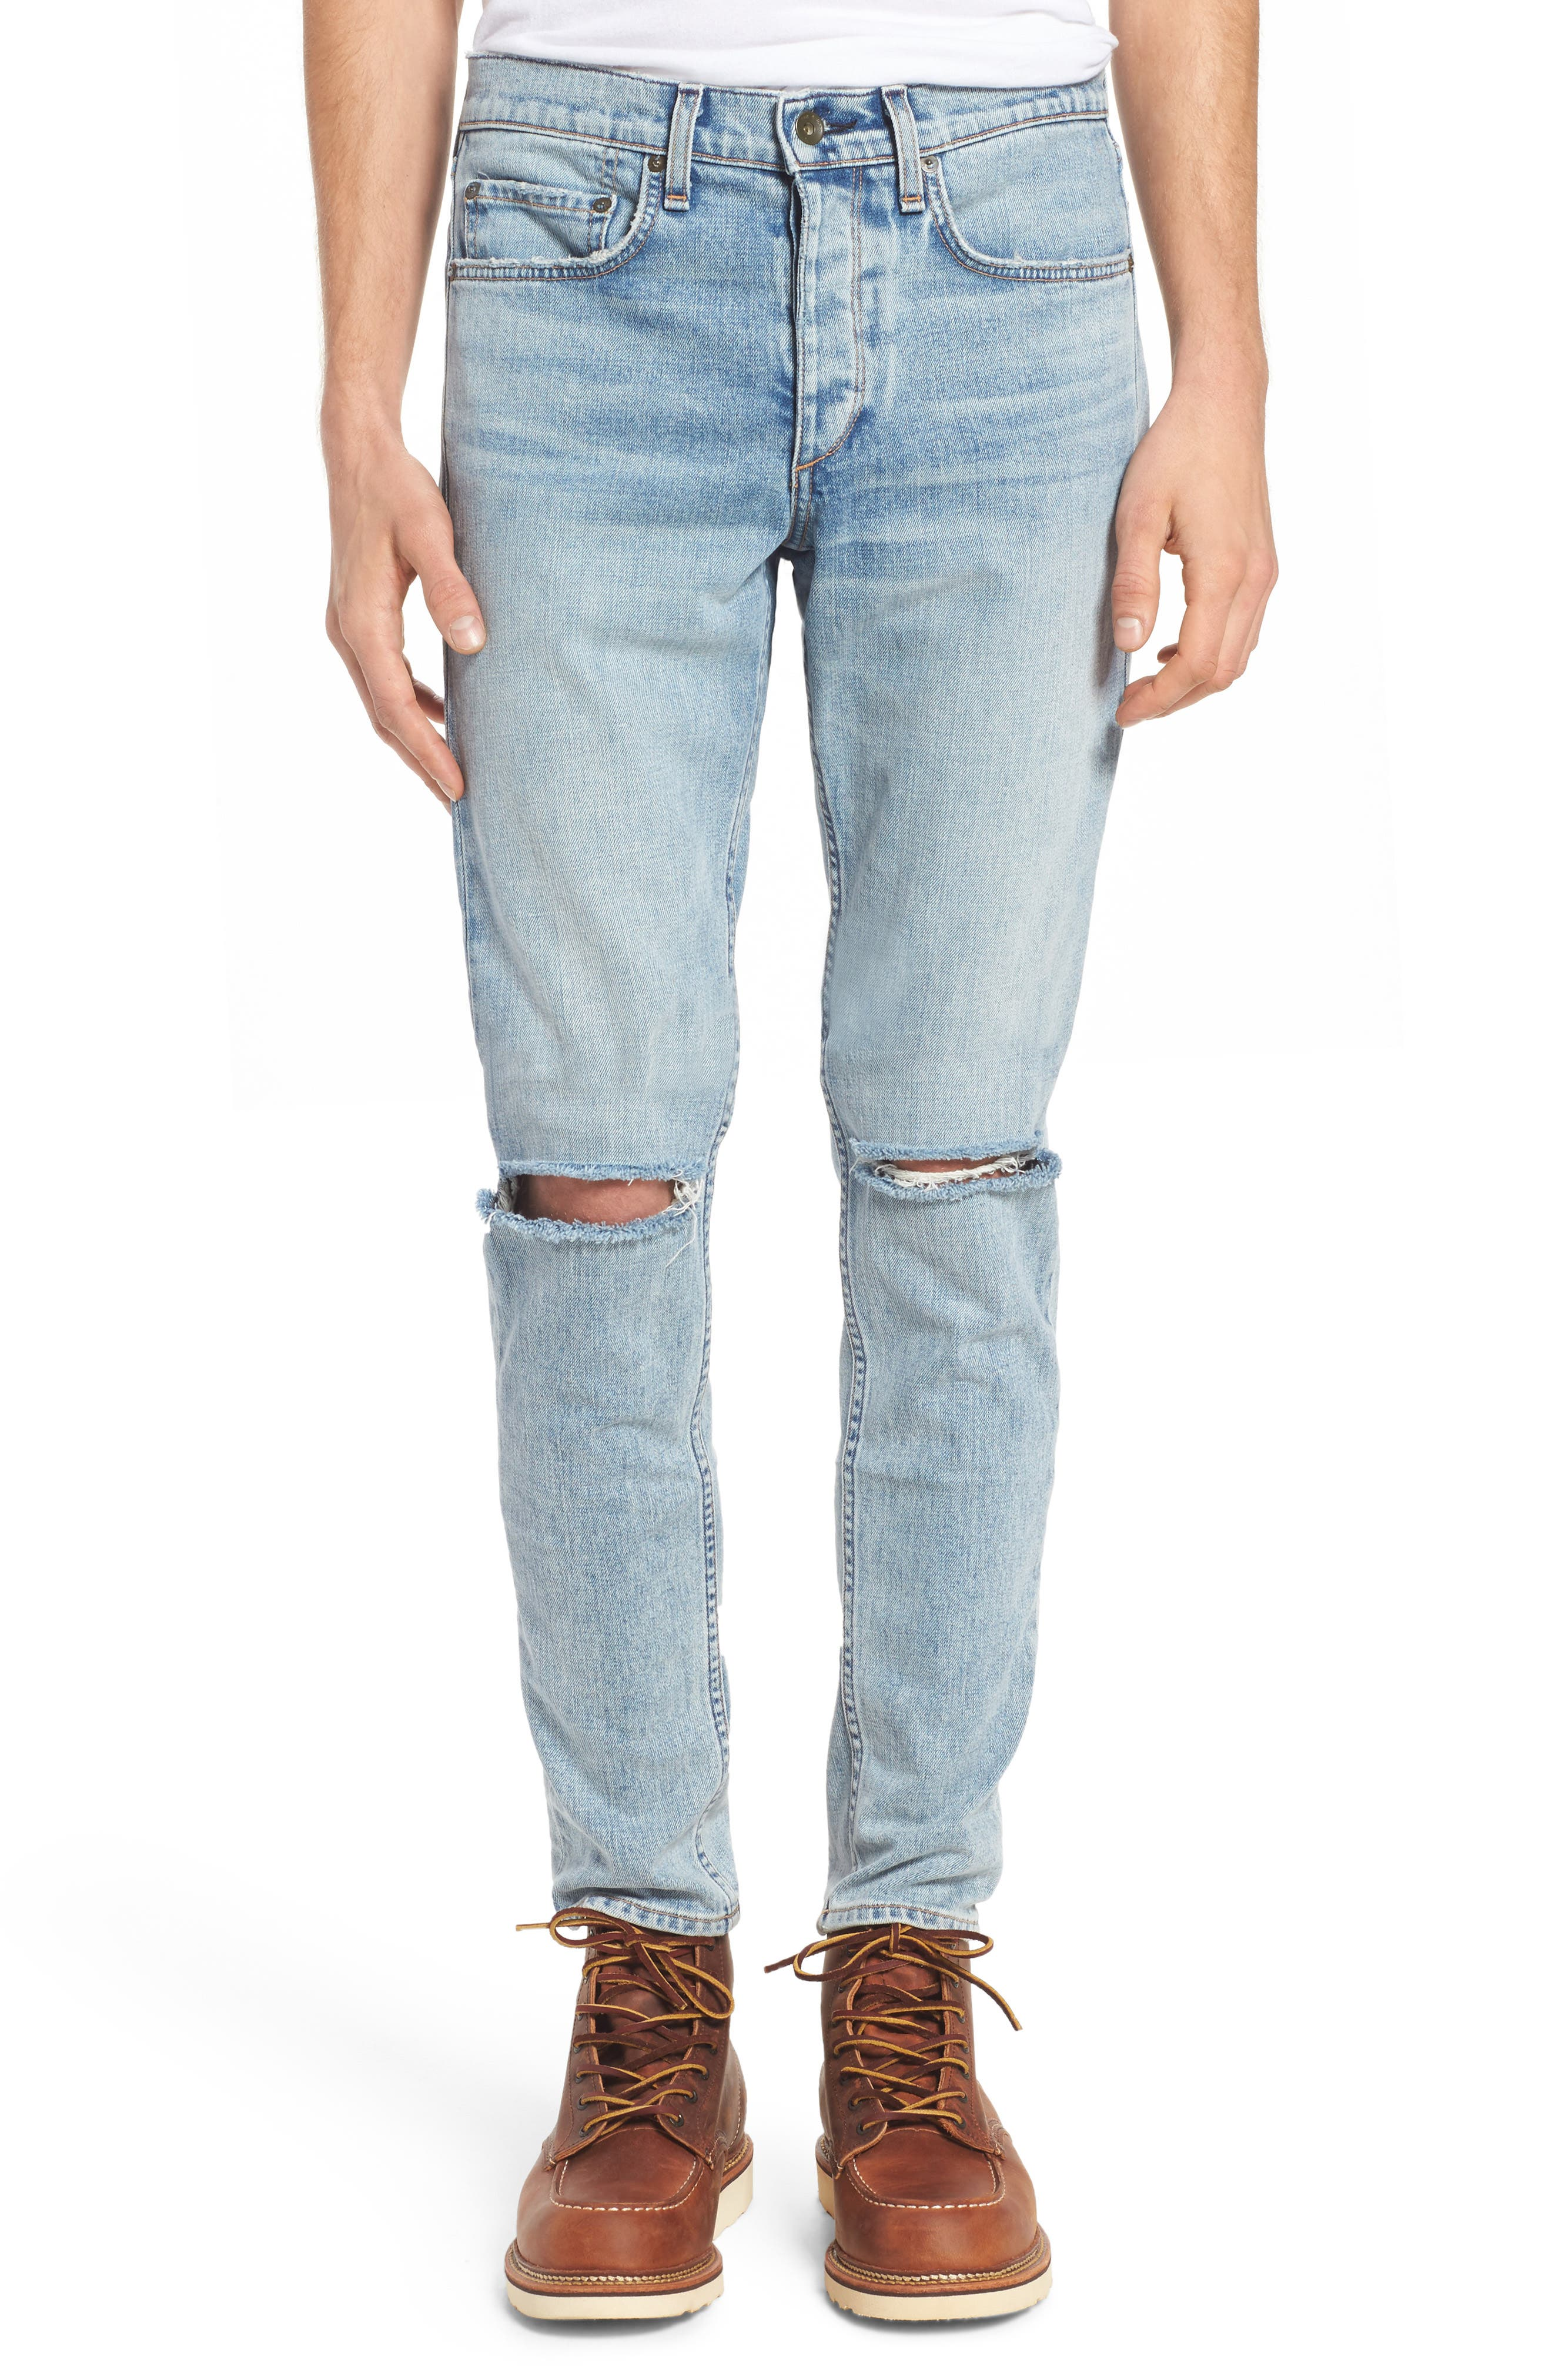 Alternate Image 1 Selected - rag & bone Fit 1 Skinny Fit Jeans (Jameson with Holes)